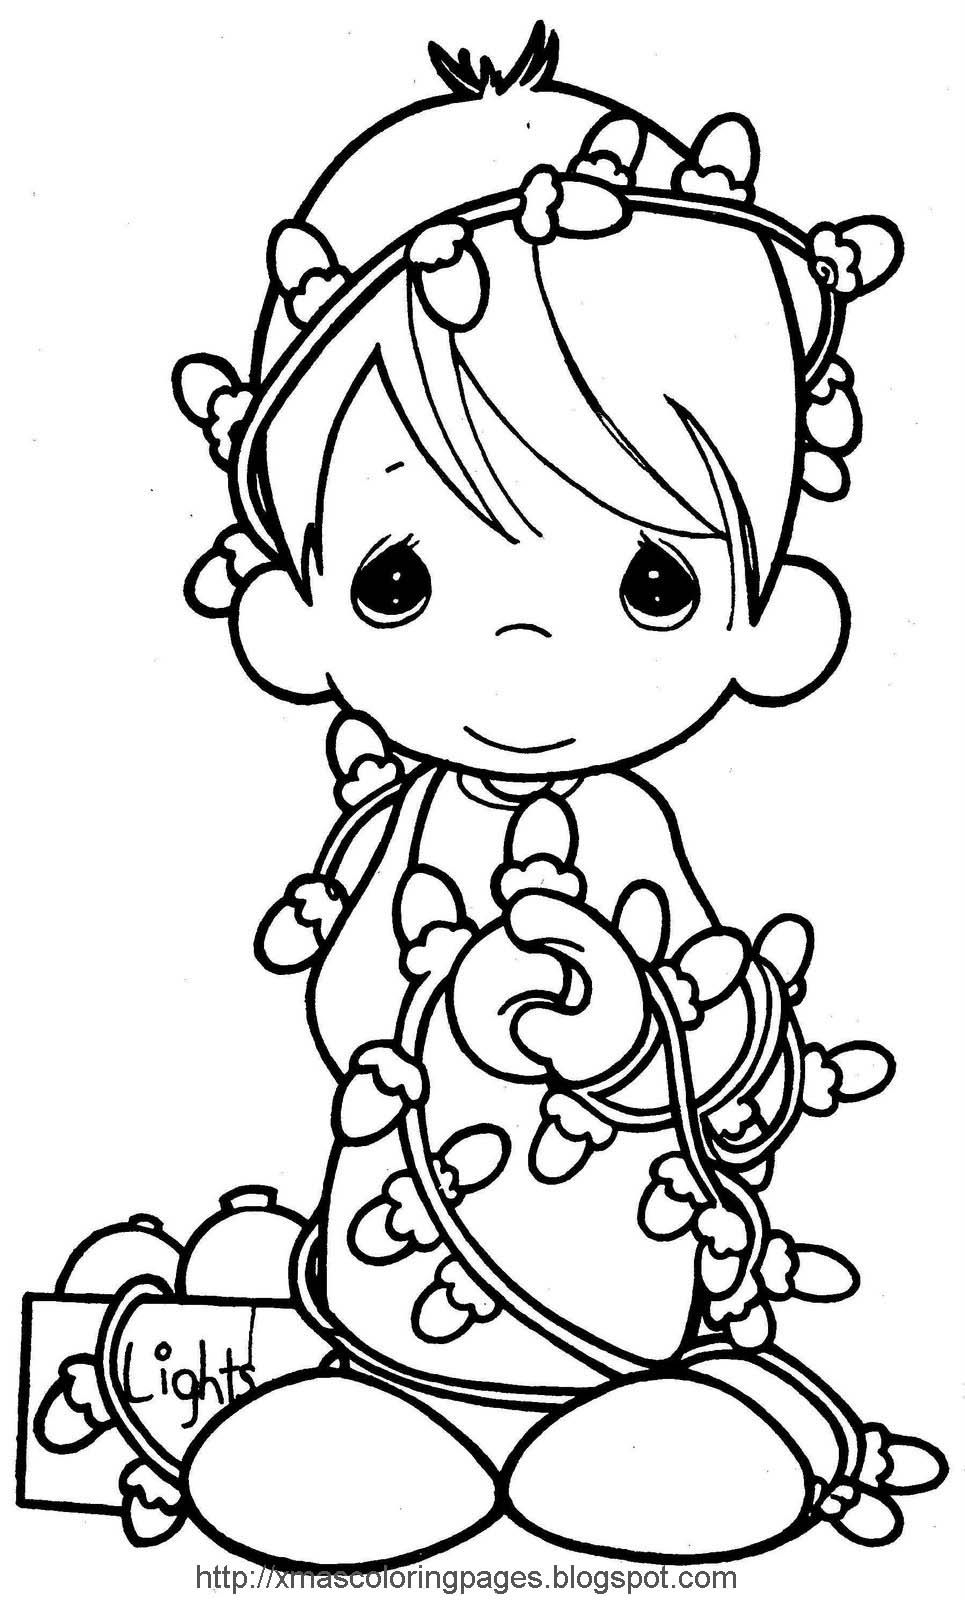 Christmas Coloring Pages Characters With Site Hundreds Of Free Printable Xmas Here